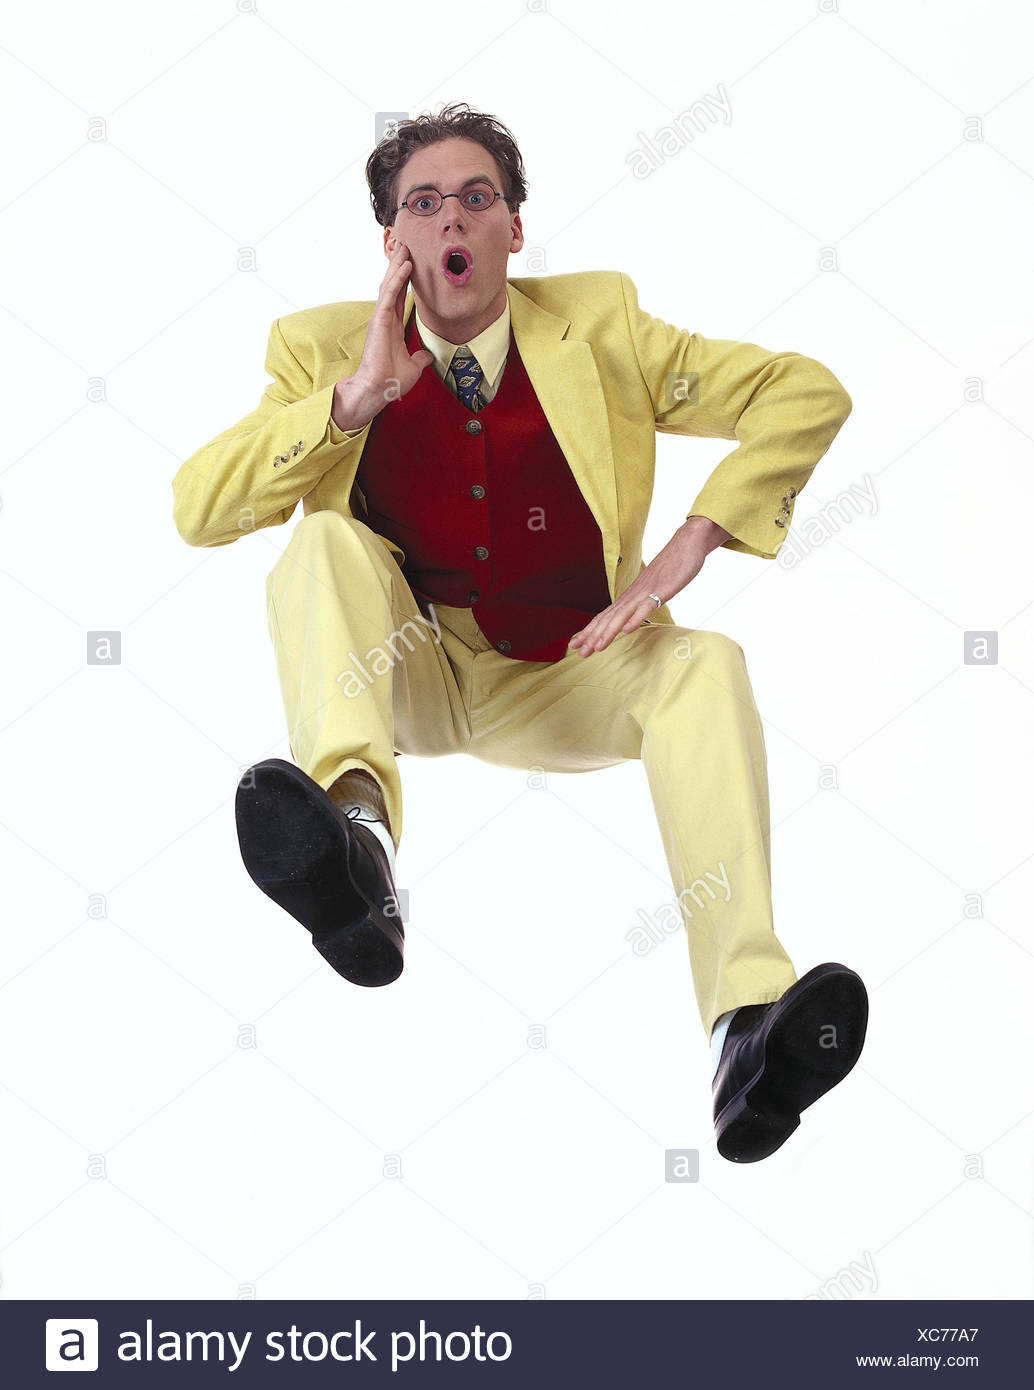 Man, young, to yellow suit, gesture, studio mb 155 A7 - Stock Image